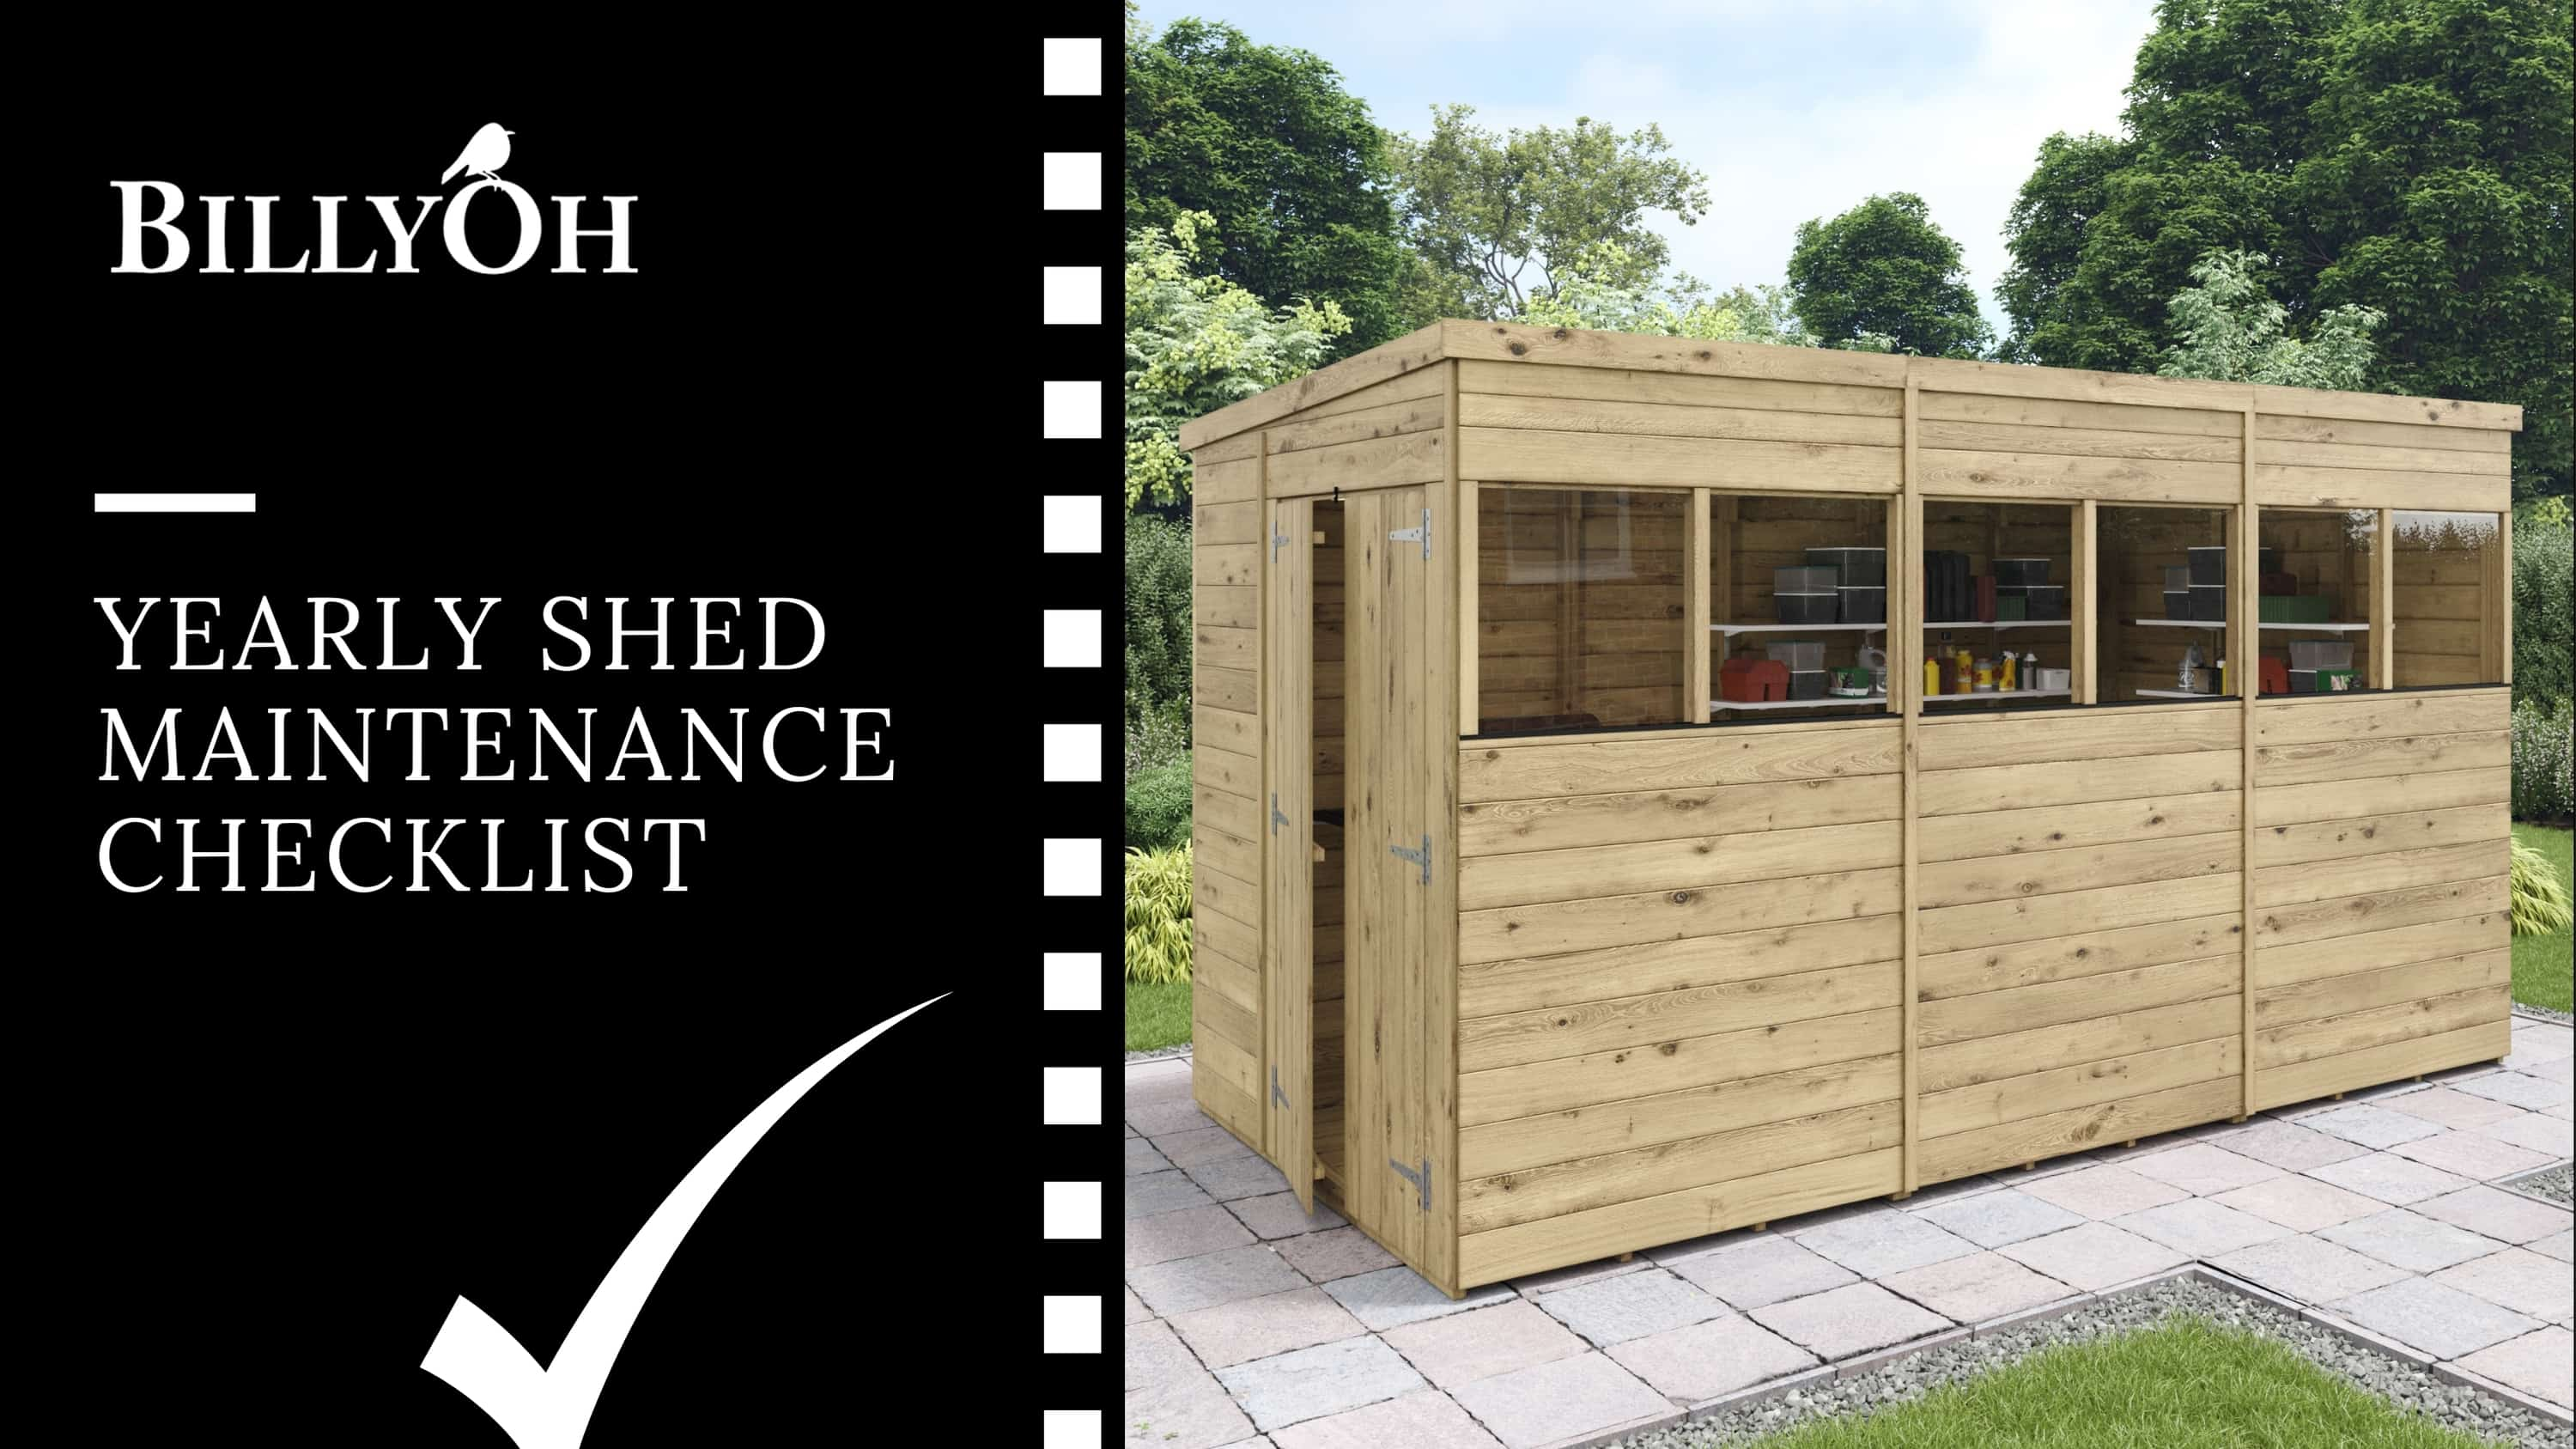 yearly shed maintenance checklist BillyOh banner with pent roof wooden shed